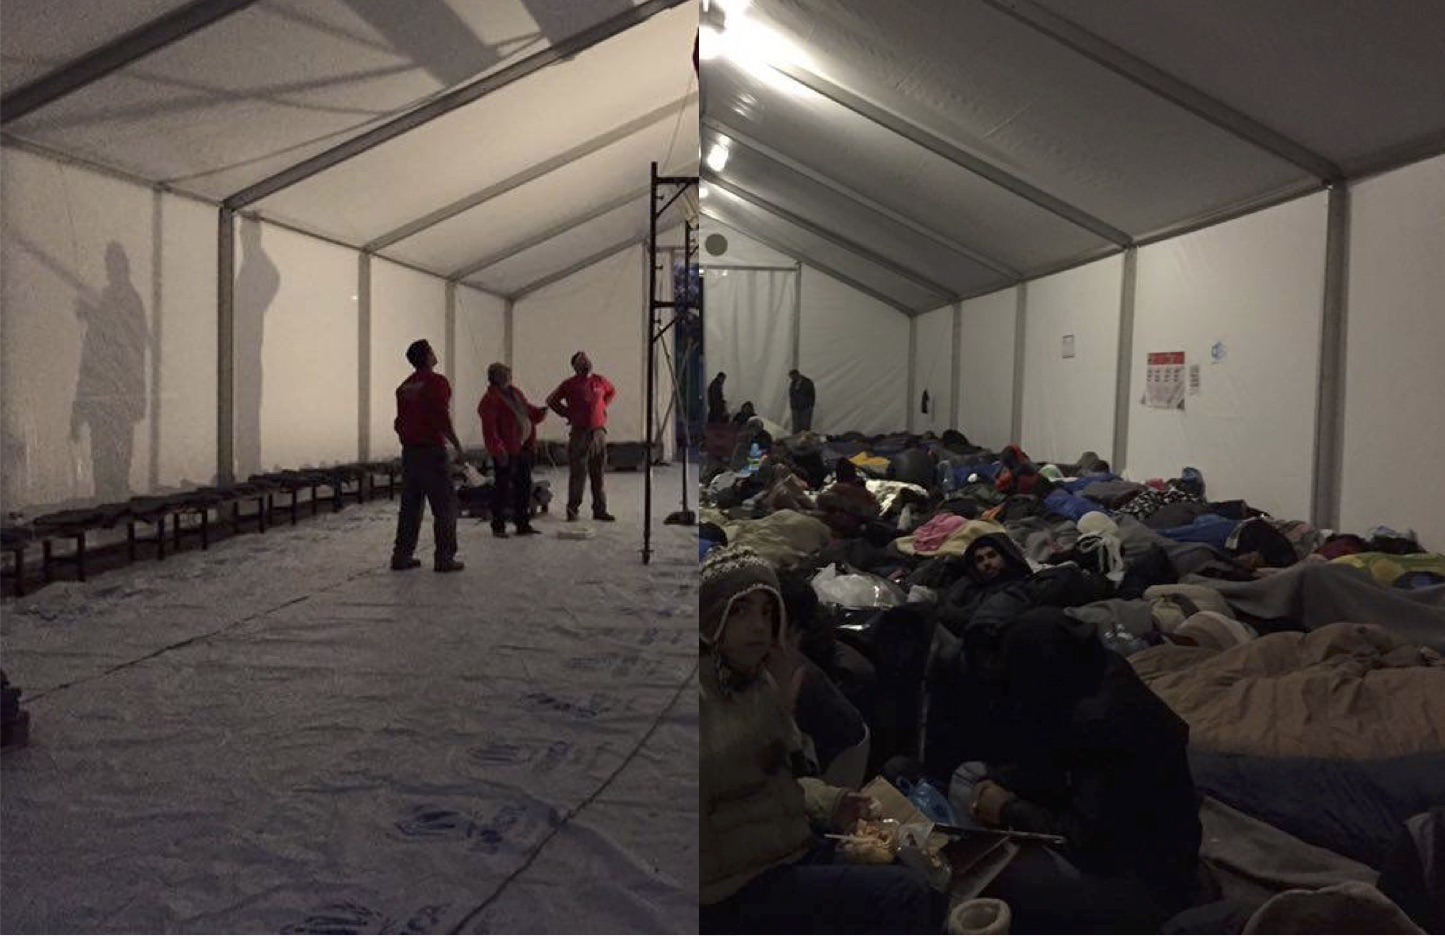 Two more tents were constructed to house the swelling population as borders remain closed.